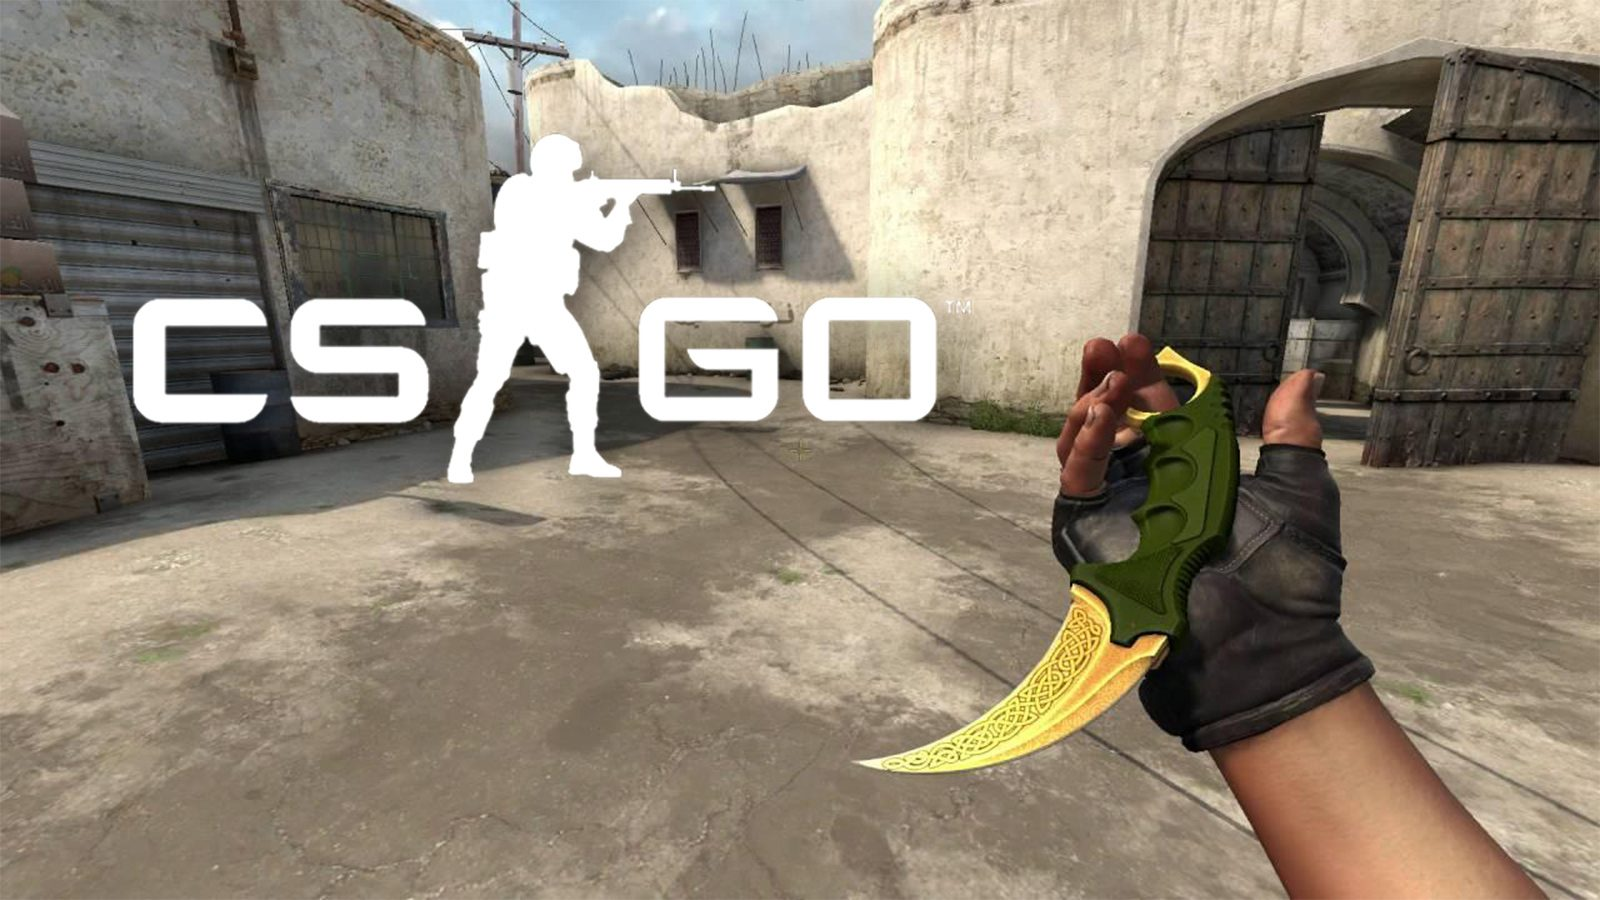 Ridiculous knife skin concept is the perfect fit for CS:GO - Dexerto